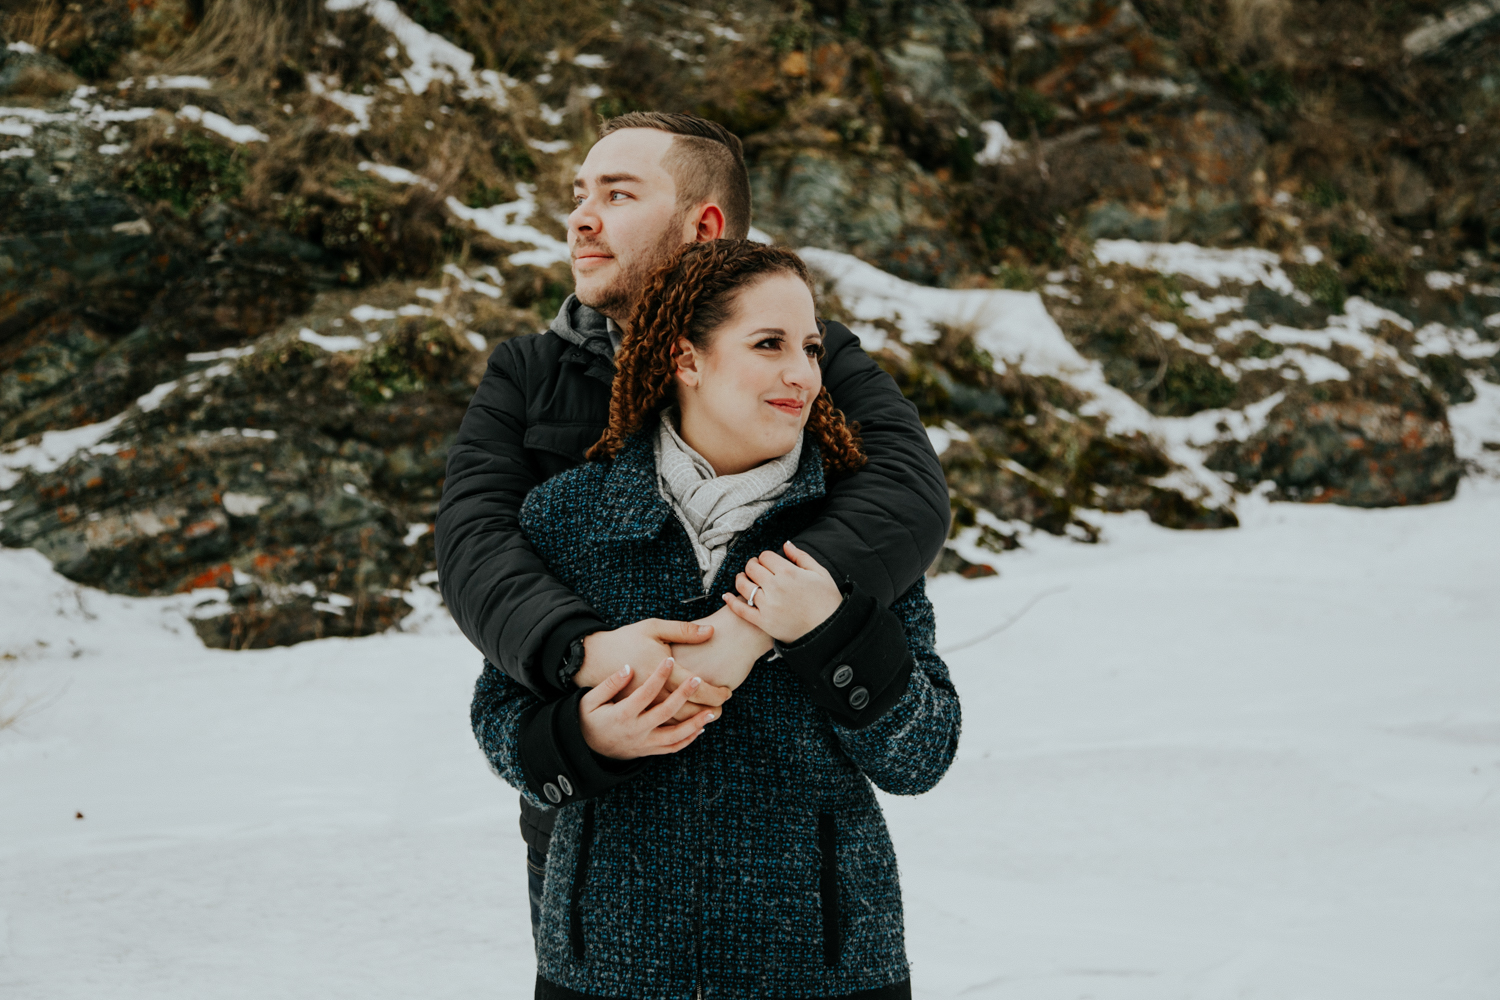 waterton-photographer-love-and-be-loved-photography-trent-danielle-engagement-winter-picture-image-photo-19.jpg